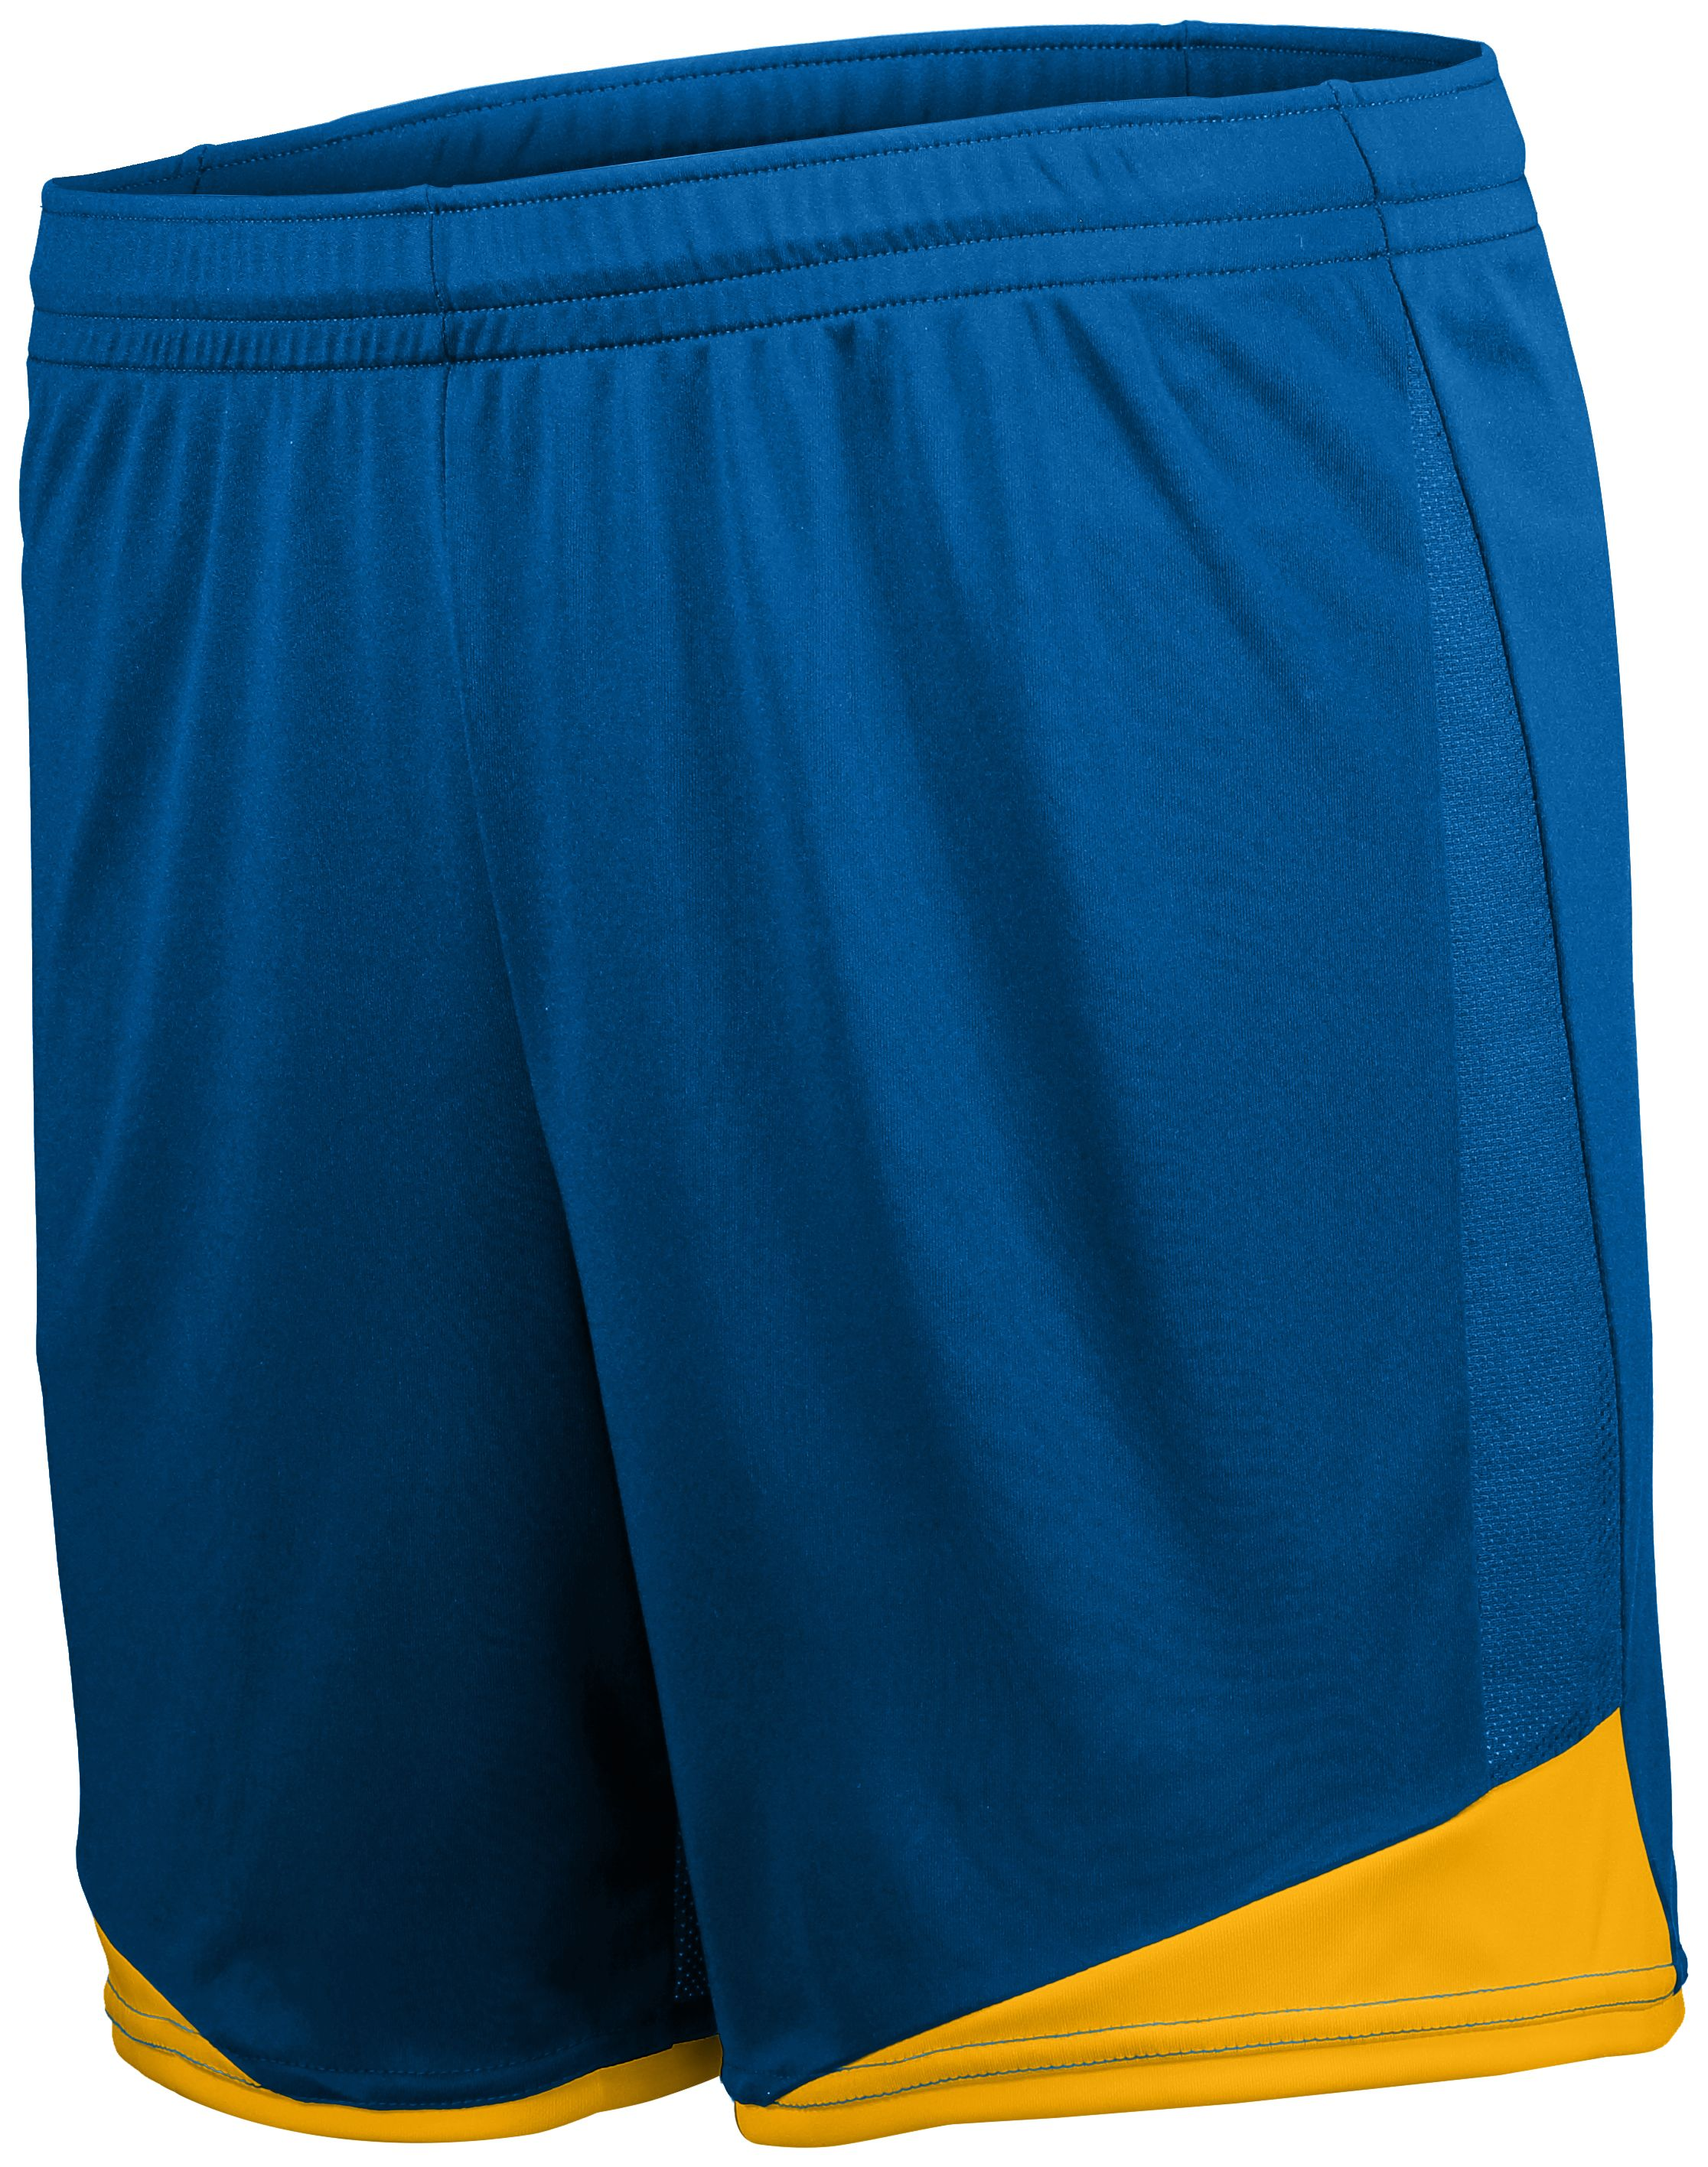 Ladies Stamford Soccer Shorts - ROYAL/ATHLETIC GOLD